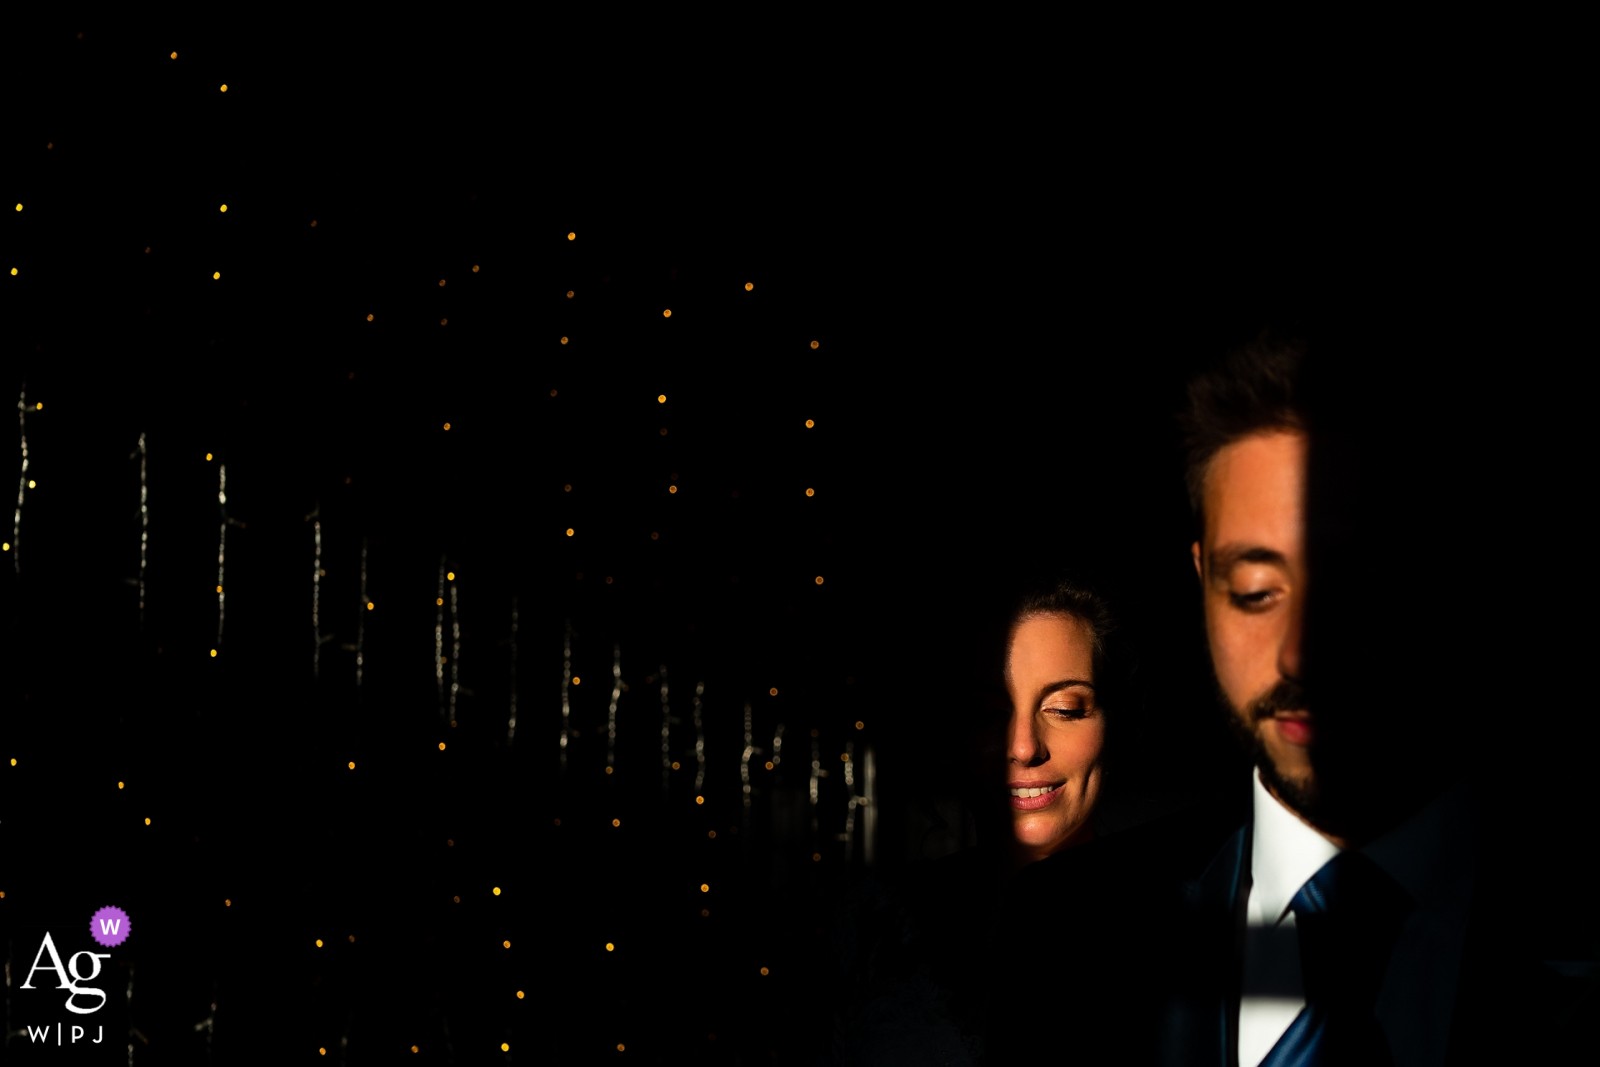 Artistic wedding photo from Stanjel Castle, Slovenia with the couple, Lights and shadows